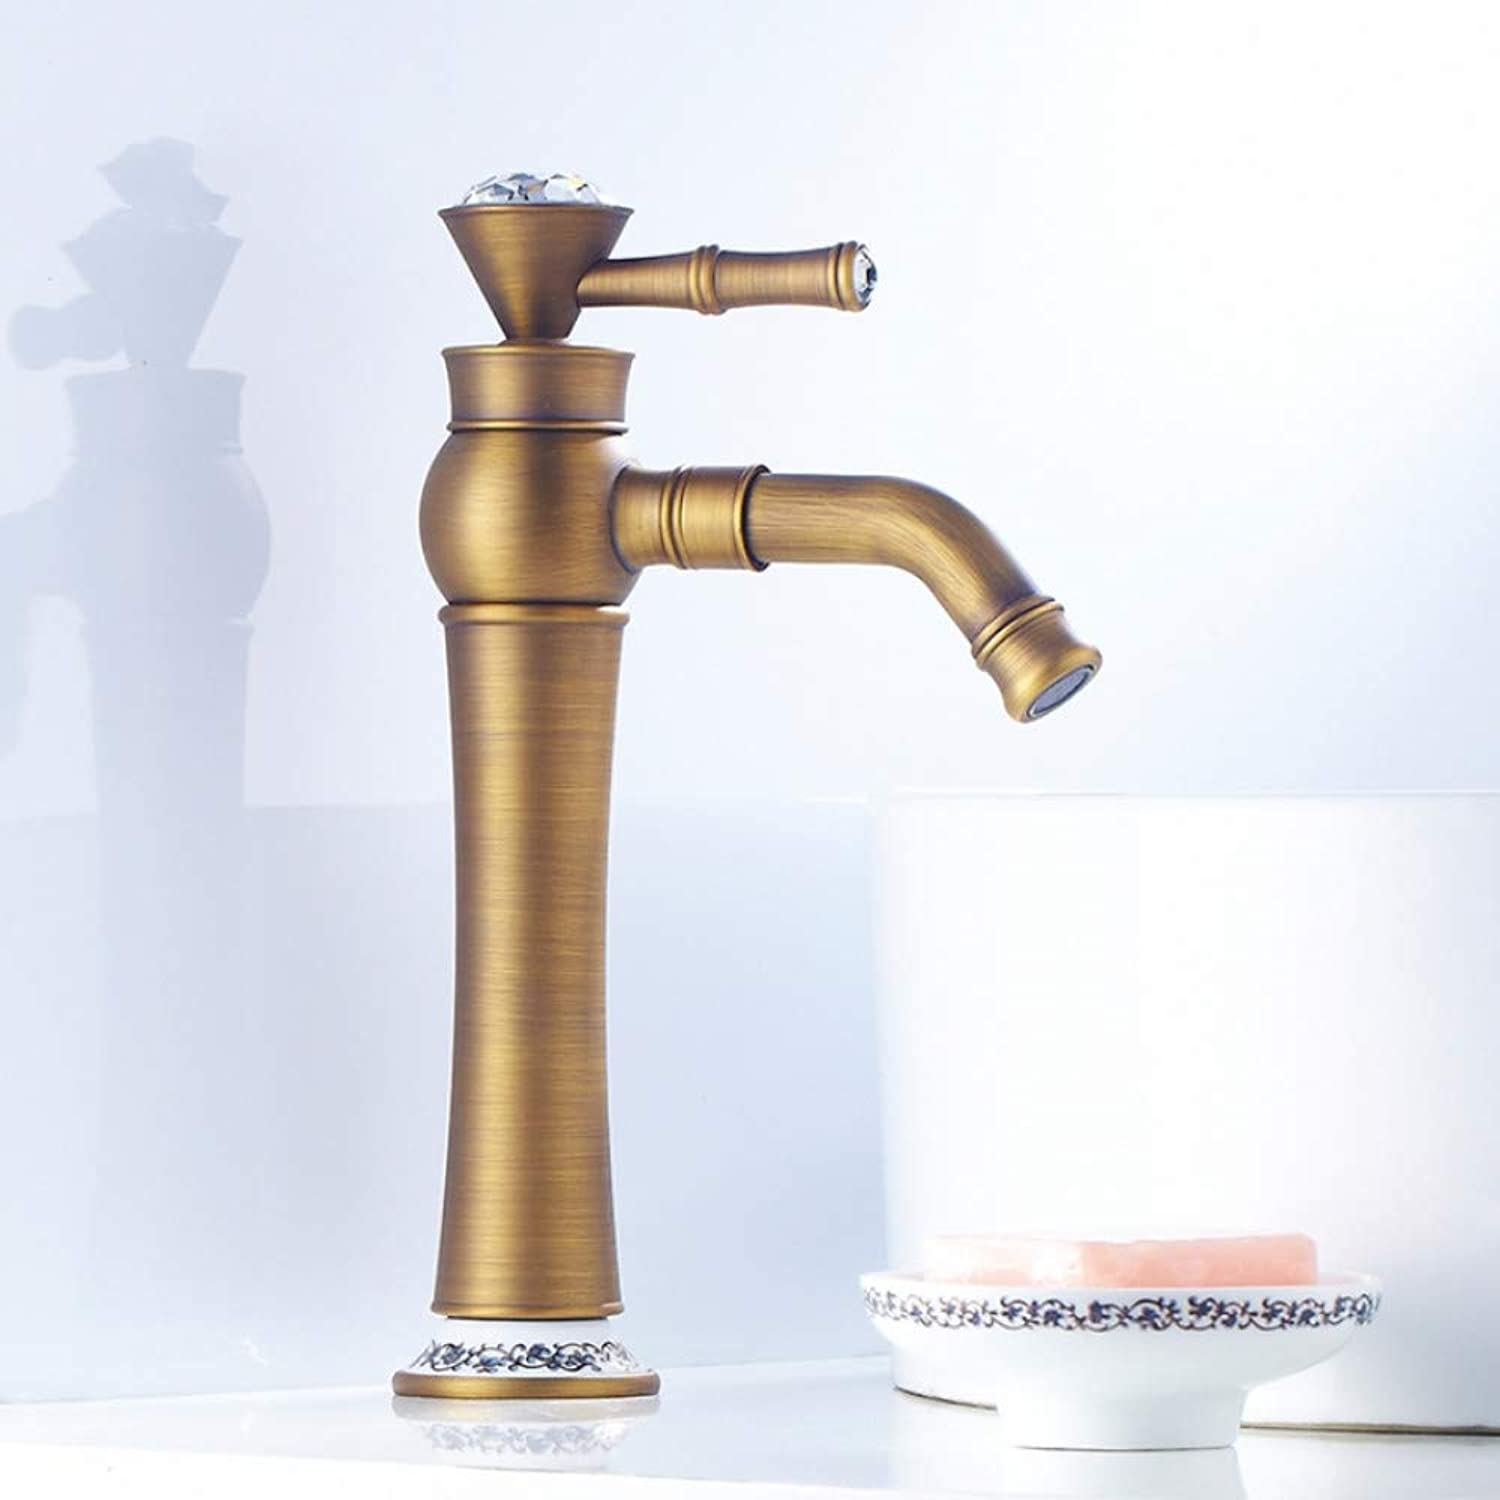 Lddpl Antique Brass faucets Bathroom Brushed Sink Basin Faucet Mixer Water Tap with Ceramic Home Y10085